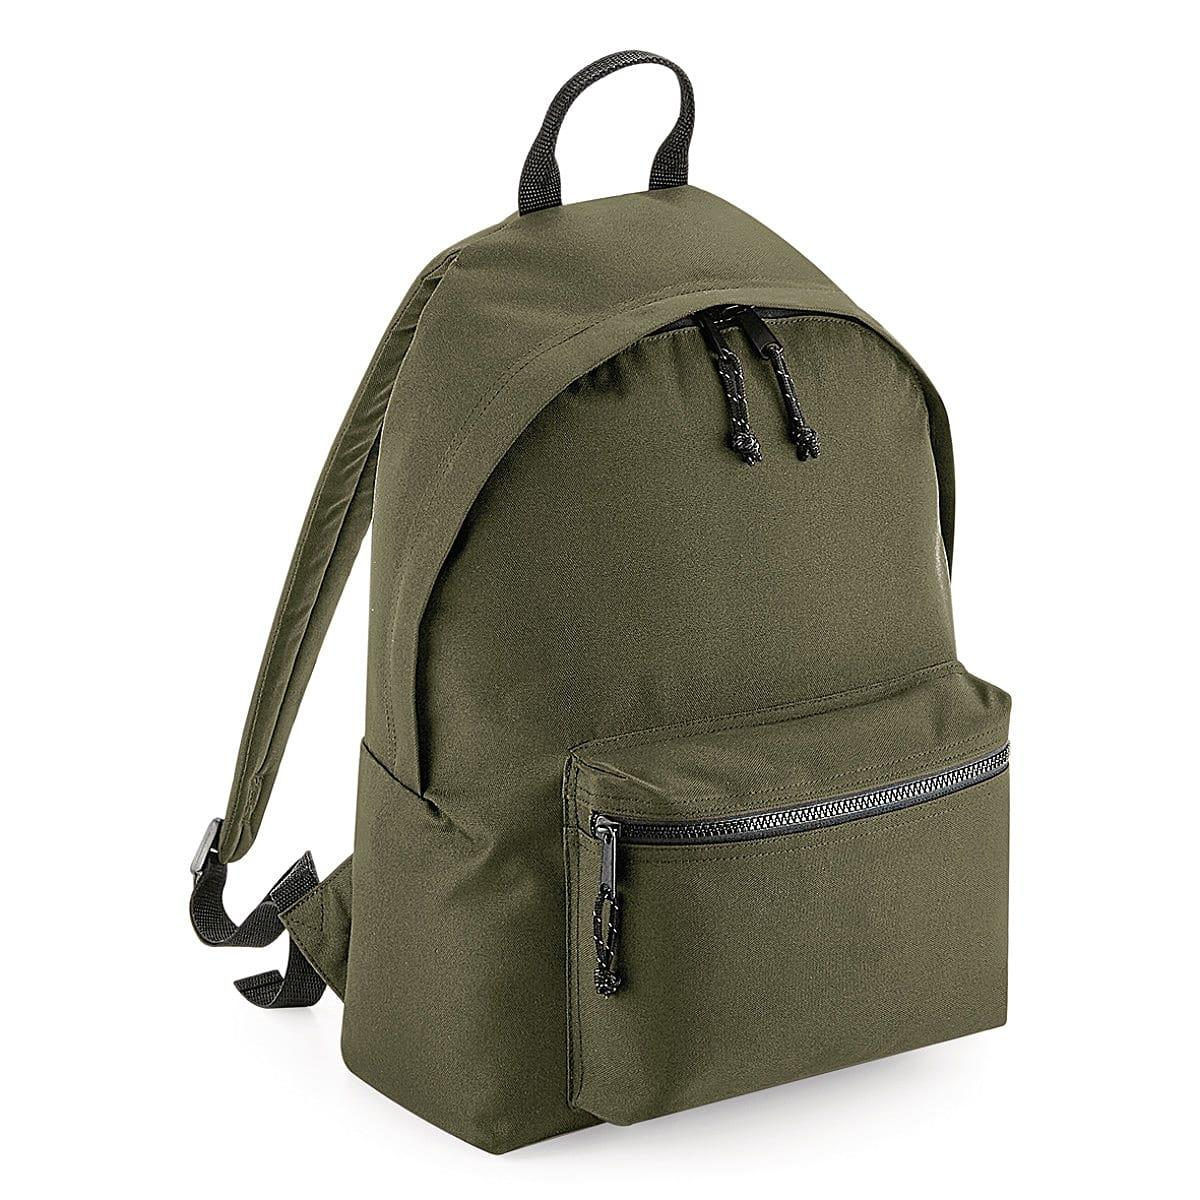 Bagbase Recycled Backpack in Military Green (Product Code: BG285)